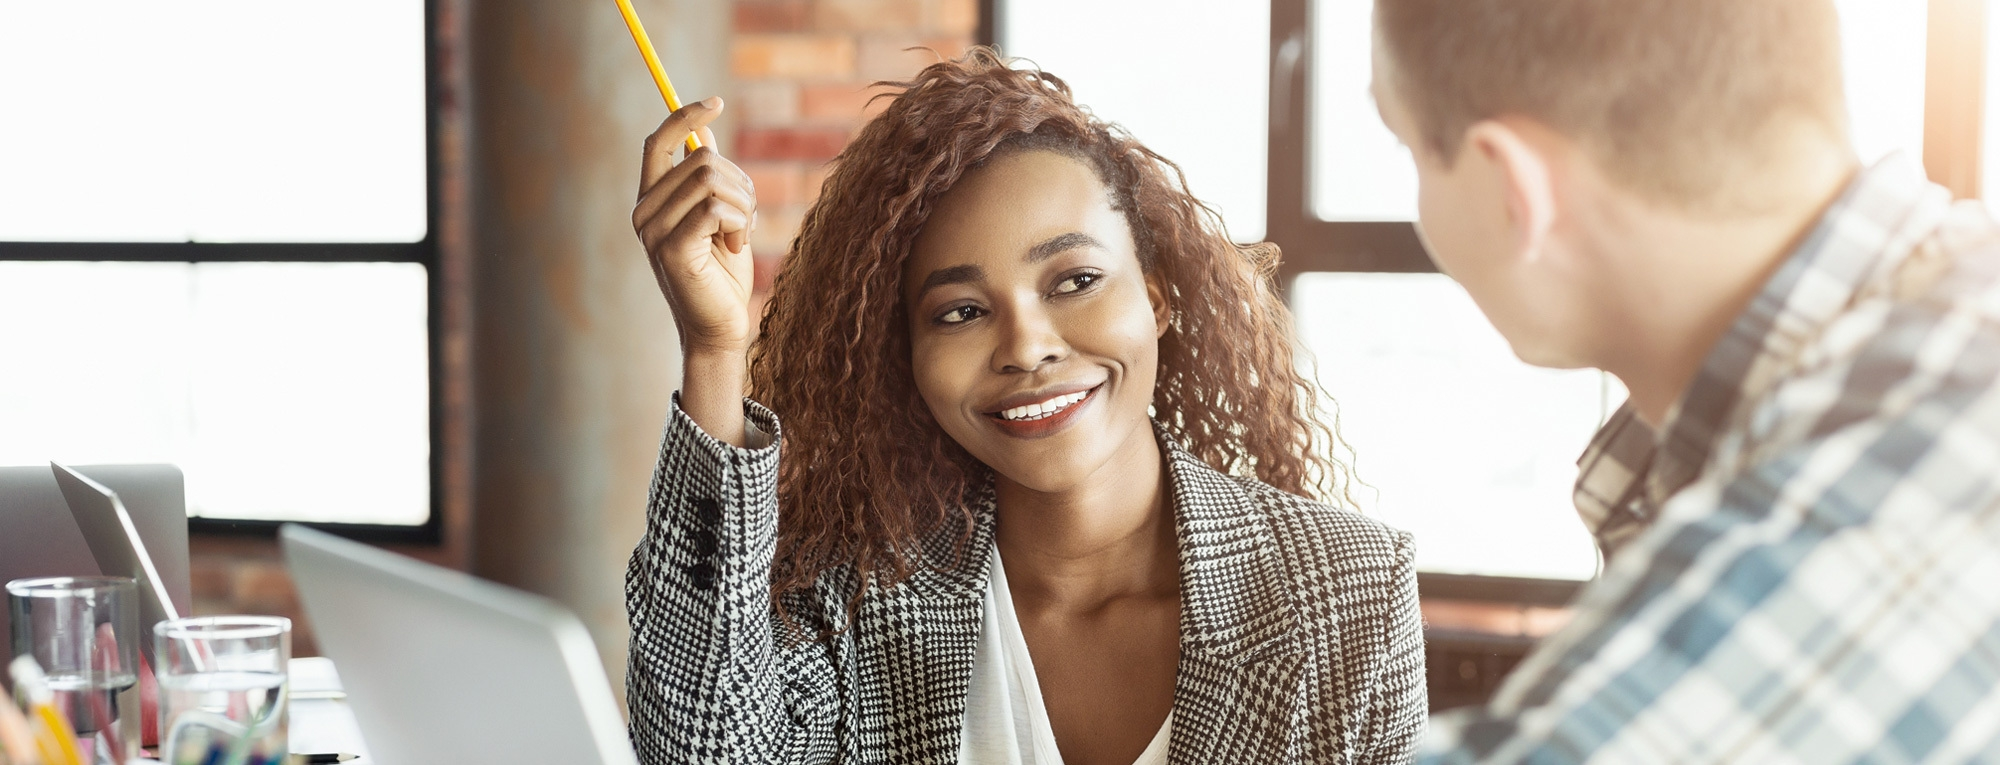 woman smiling and holding a pencil